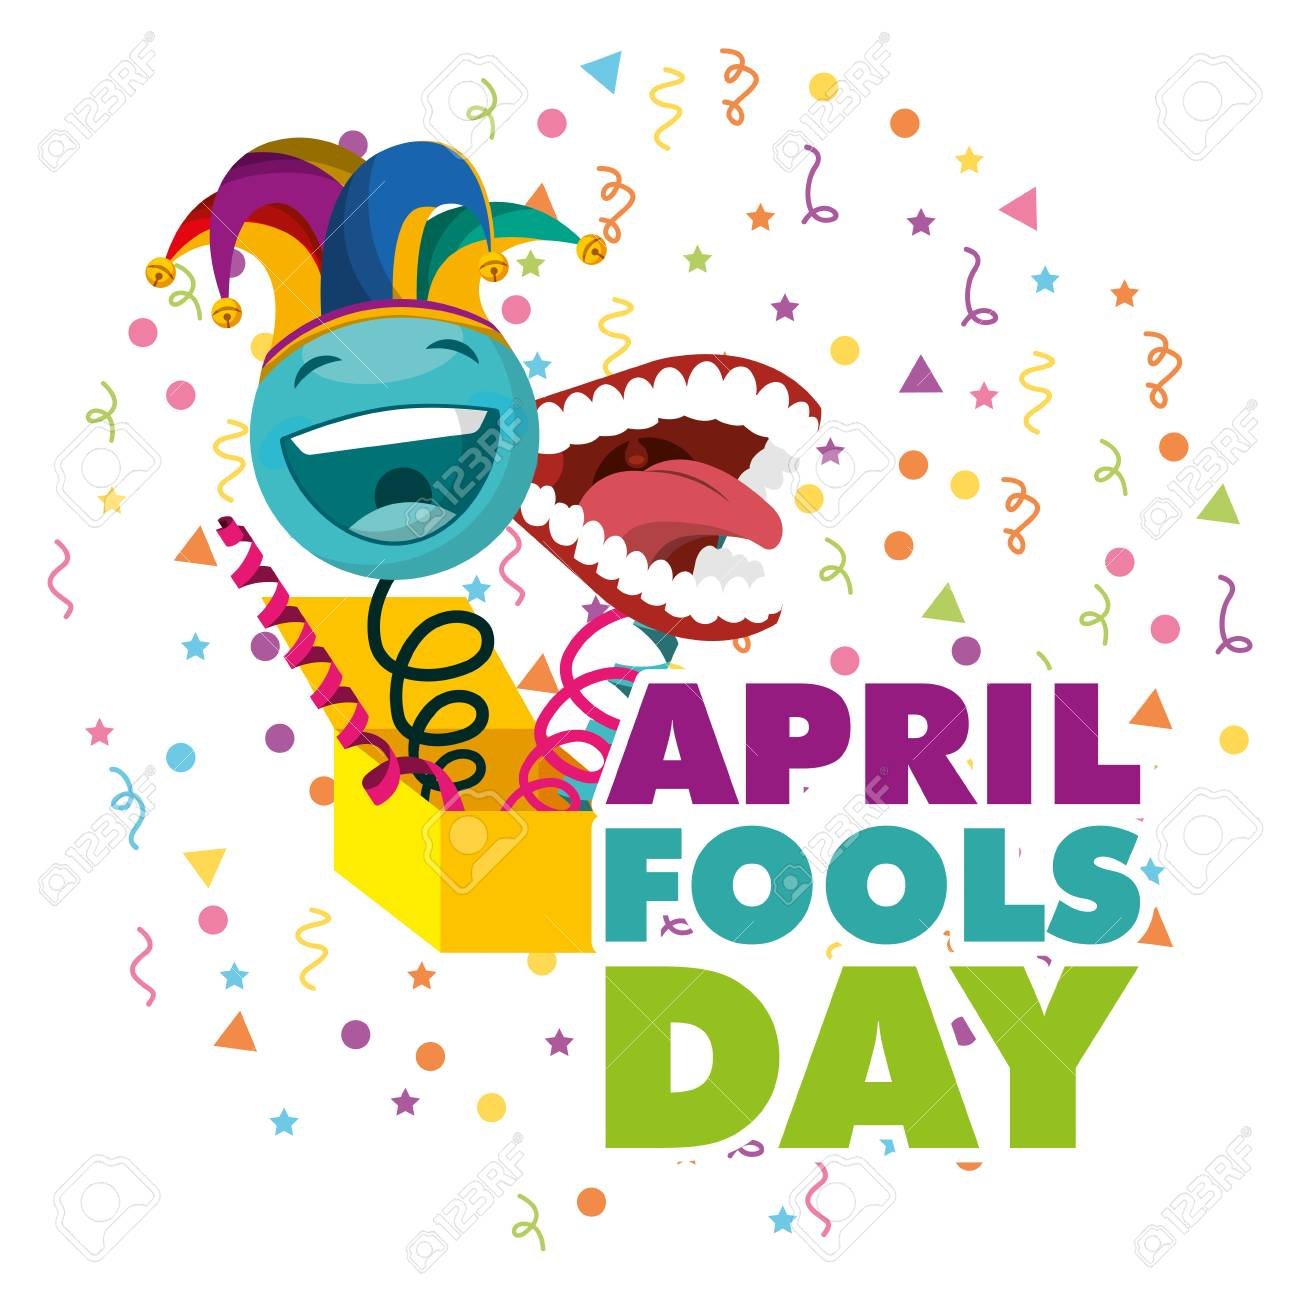 april fools day - surprise emoticon with jester hat and teeth vector illustration - 96493311